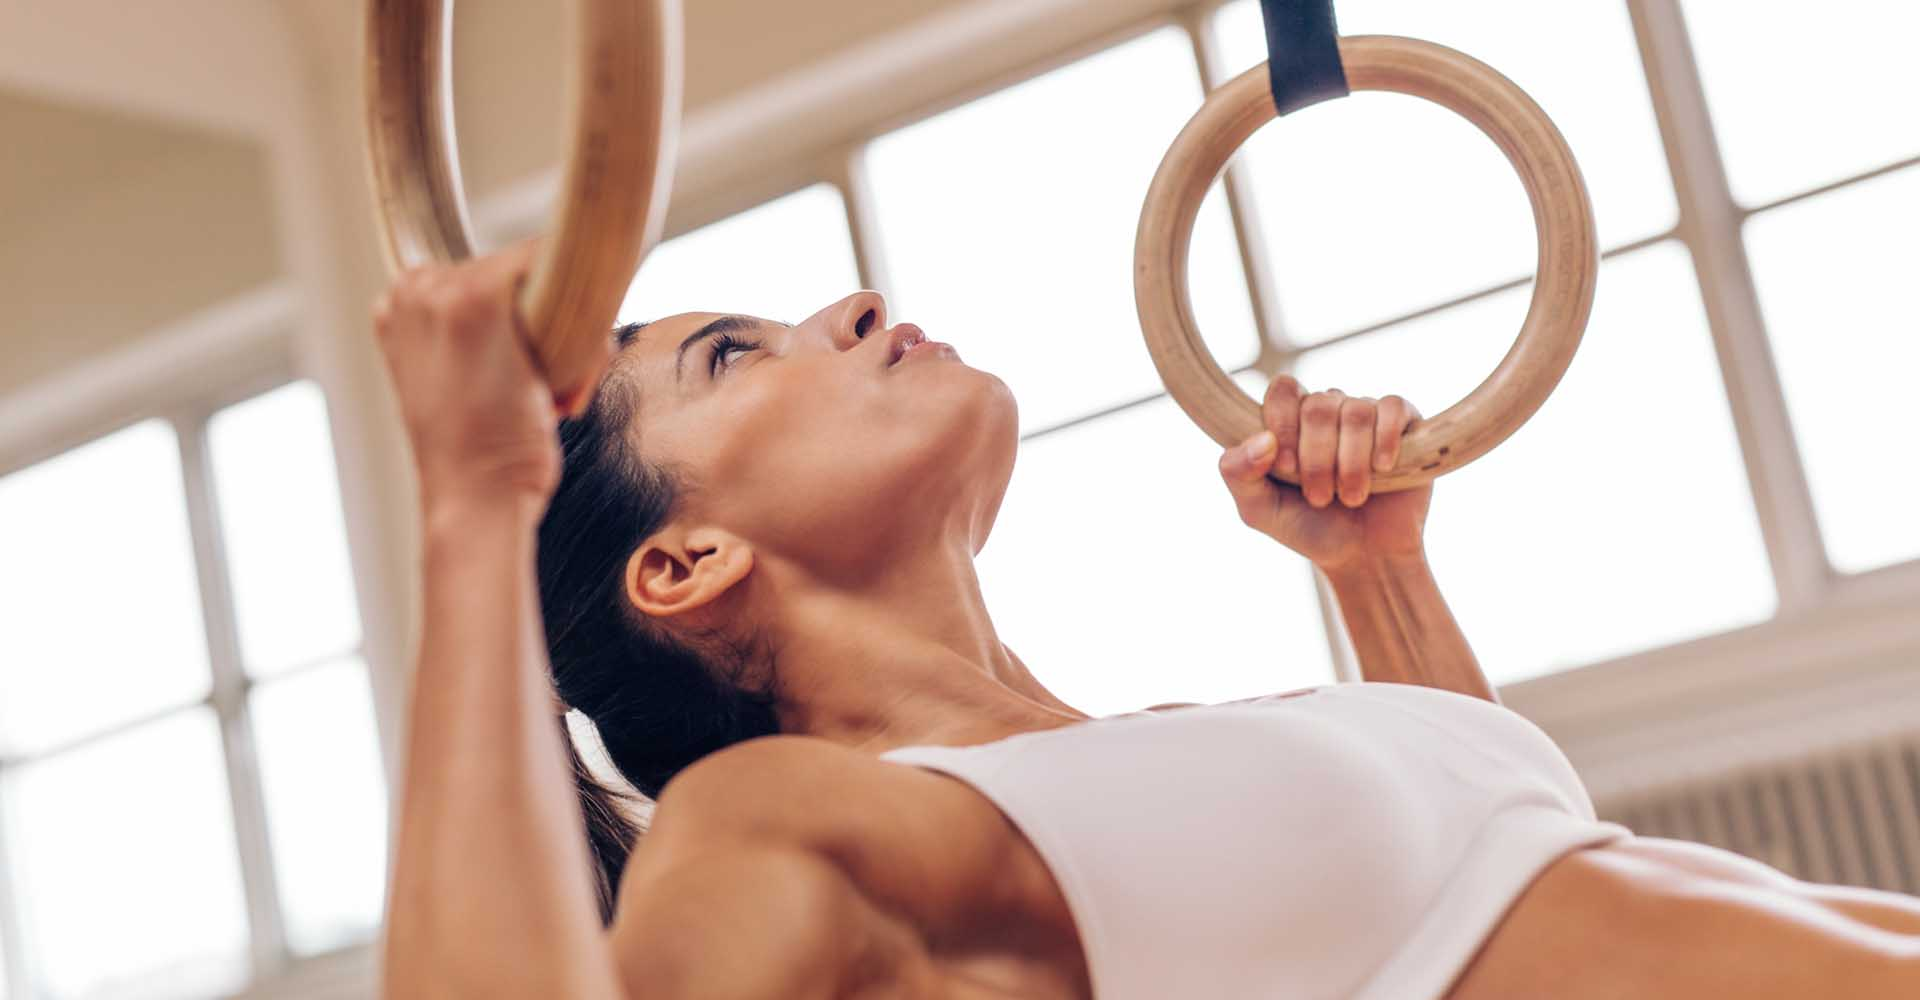 Strong young woman doing pull-ups with gymnastic rings.